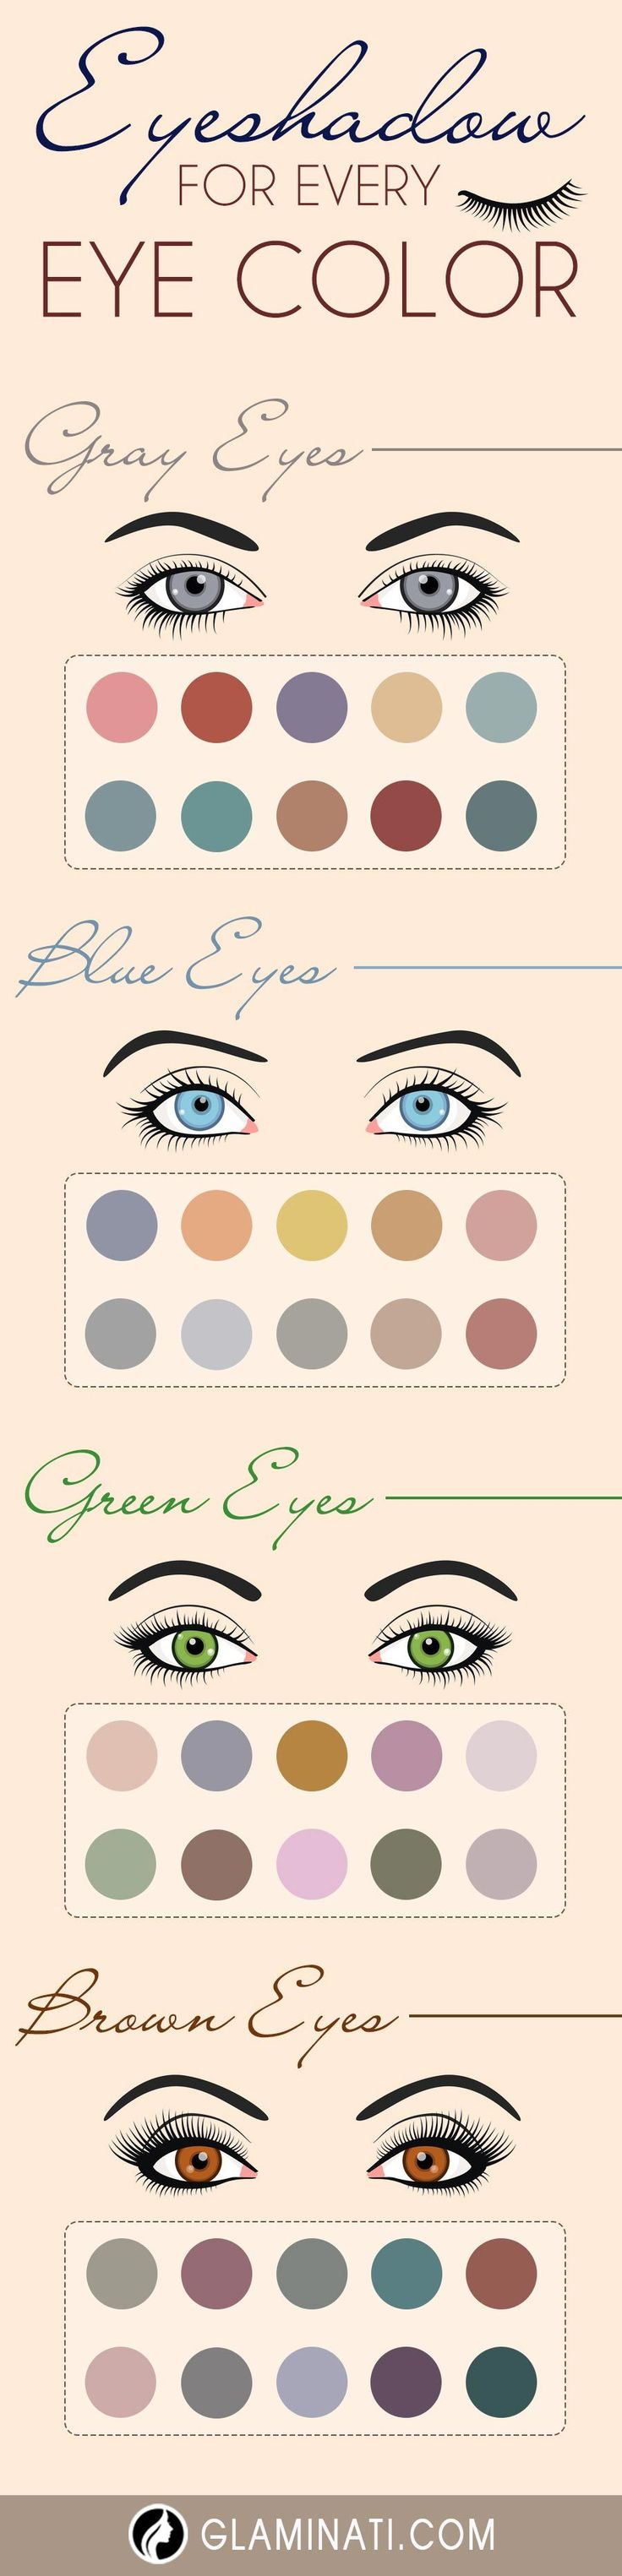 33 Most Magical Make-up Concepts for Grey Eyes